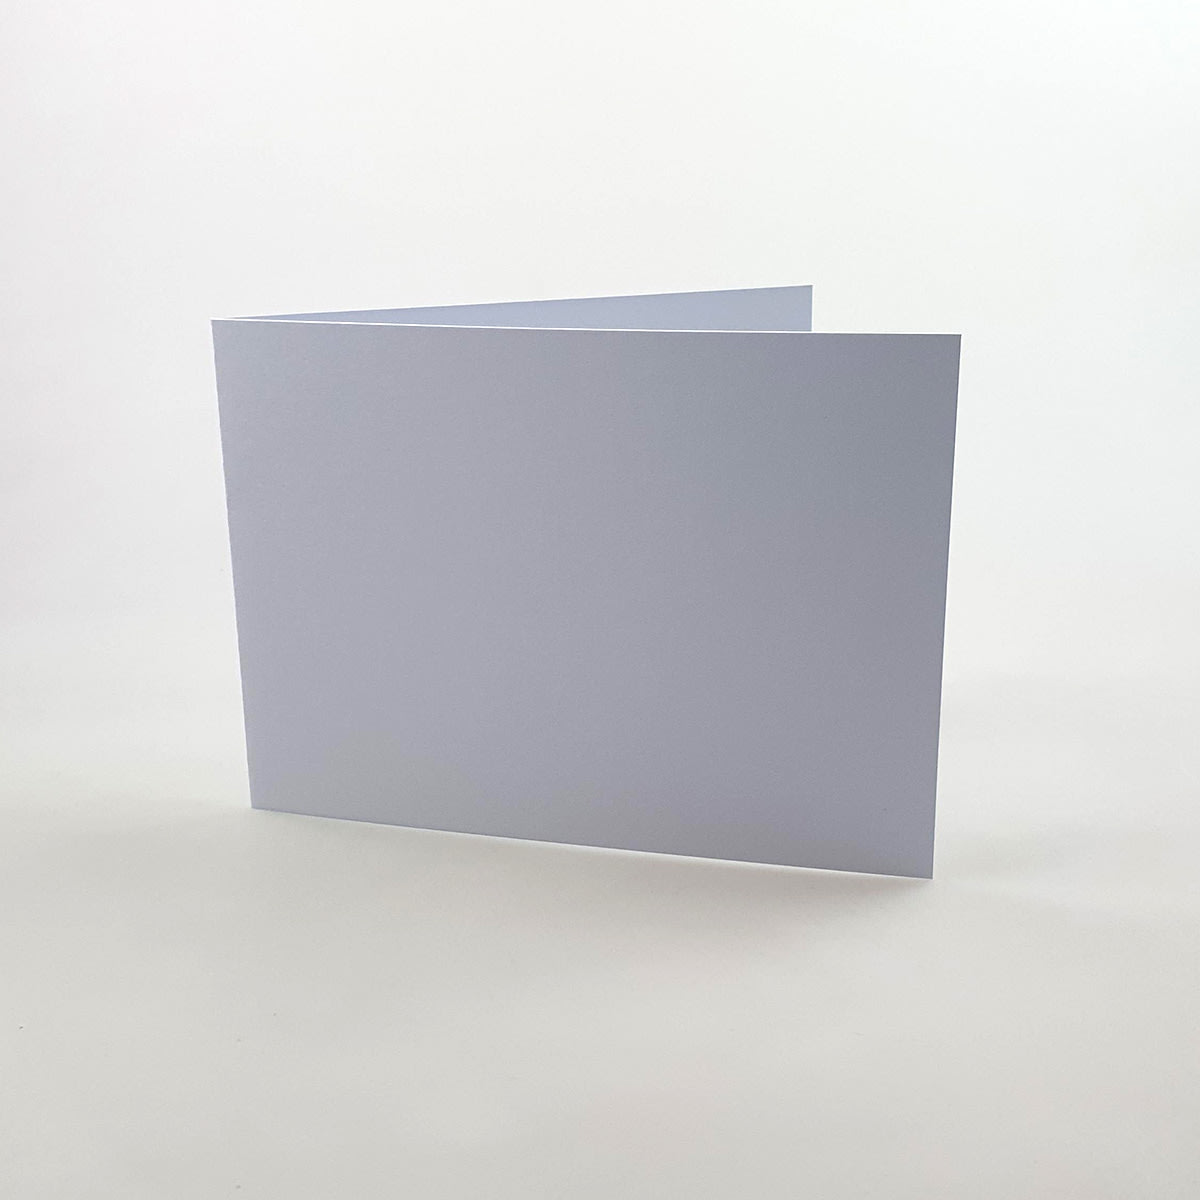 A5 SMOOTH WHITE SINGLE FOLD CARD BLANKS 300GSM (LANDSCAPE)